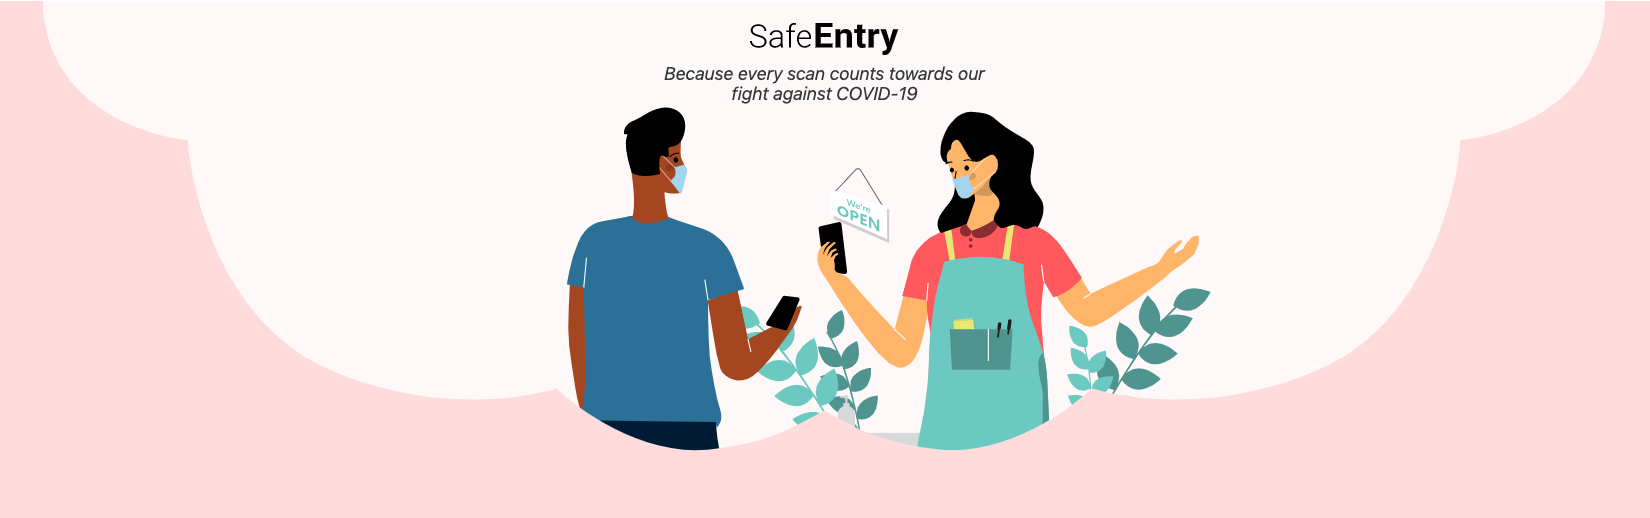 SafeEntry